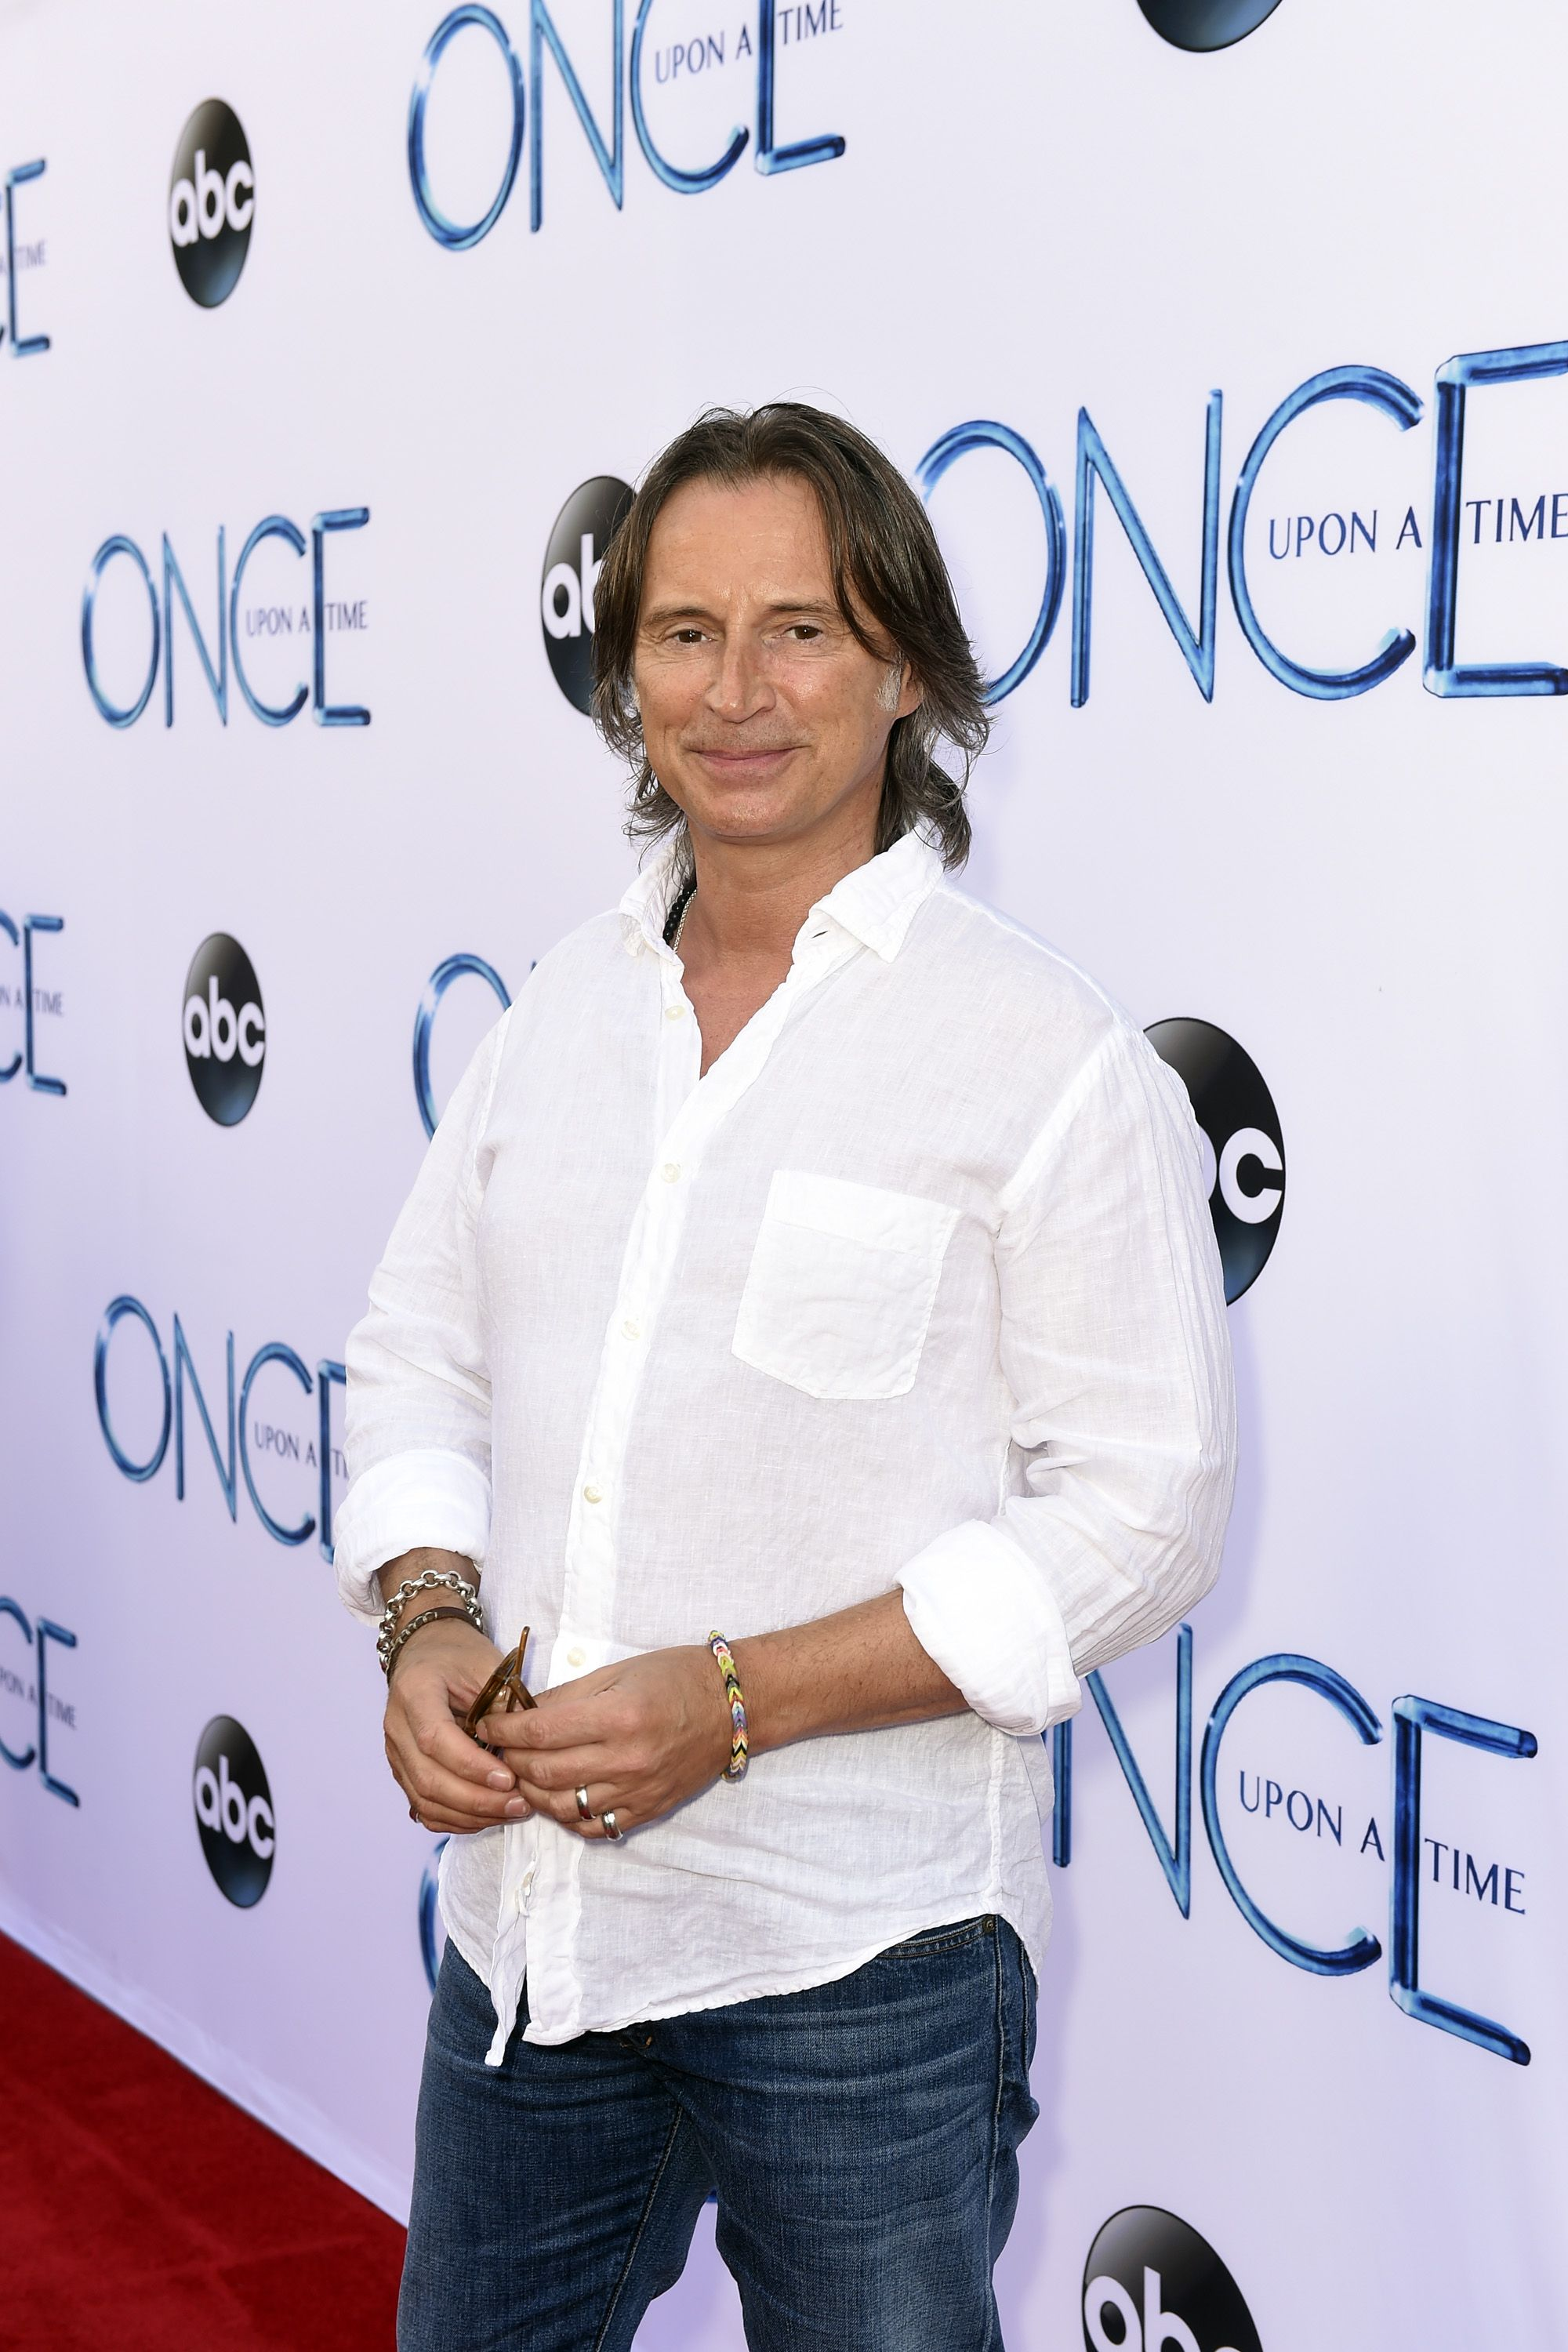 This guy right here is FINE #OnceUponATime